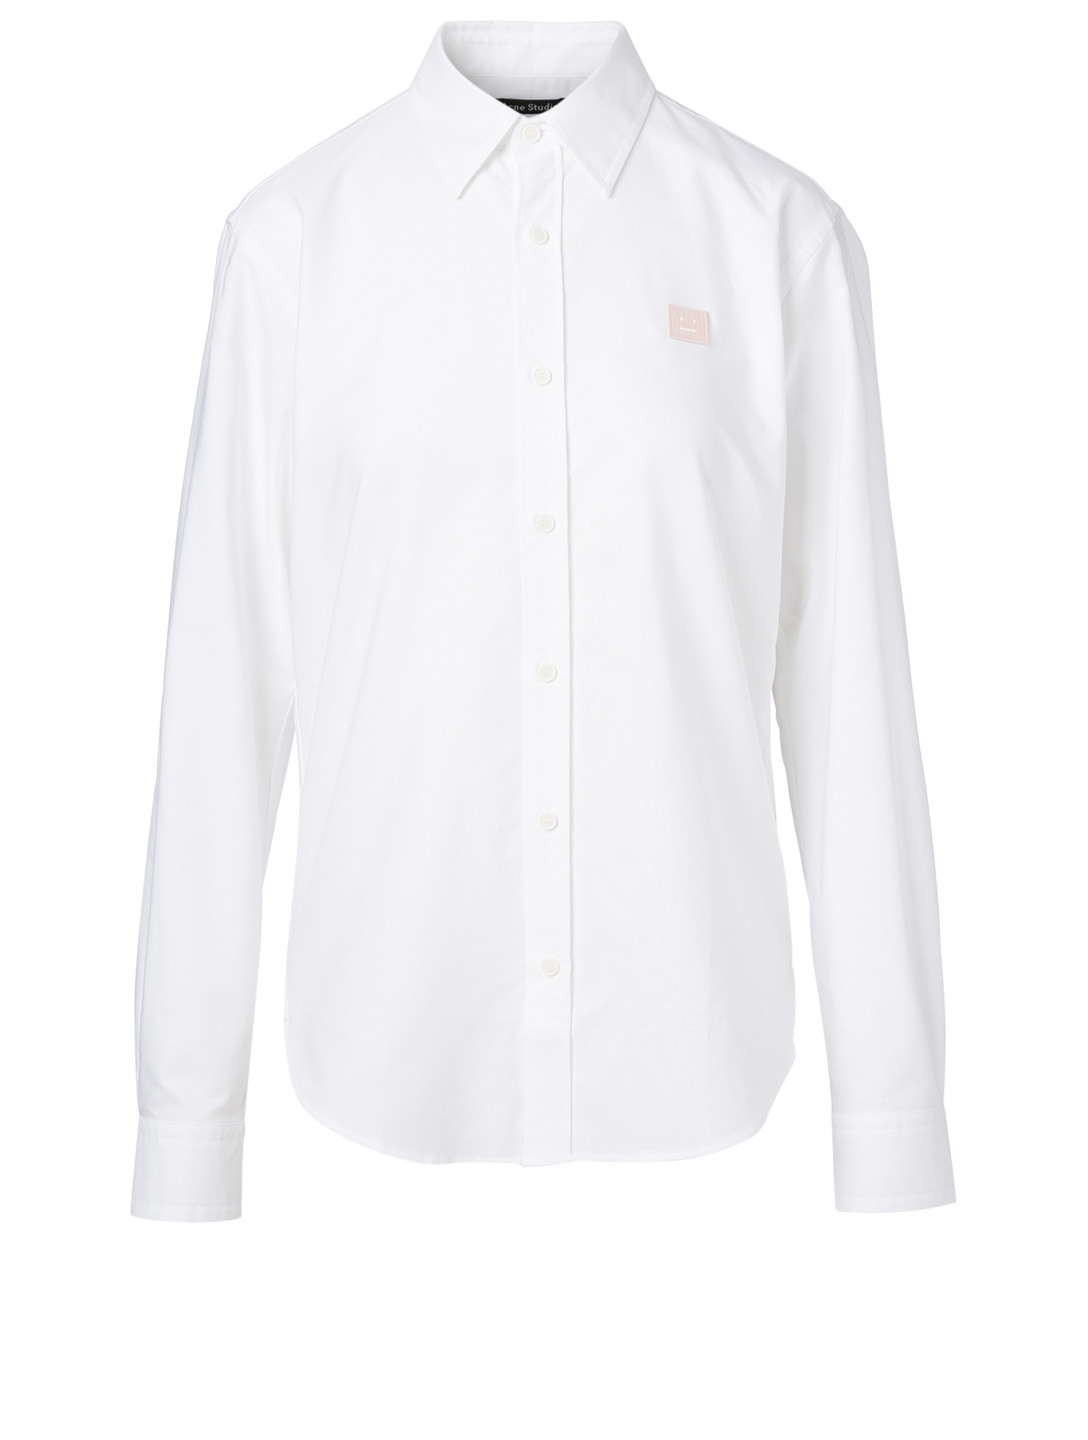 ACNE STUDIOS Cotton Logo Shirt Women's White